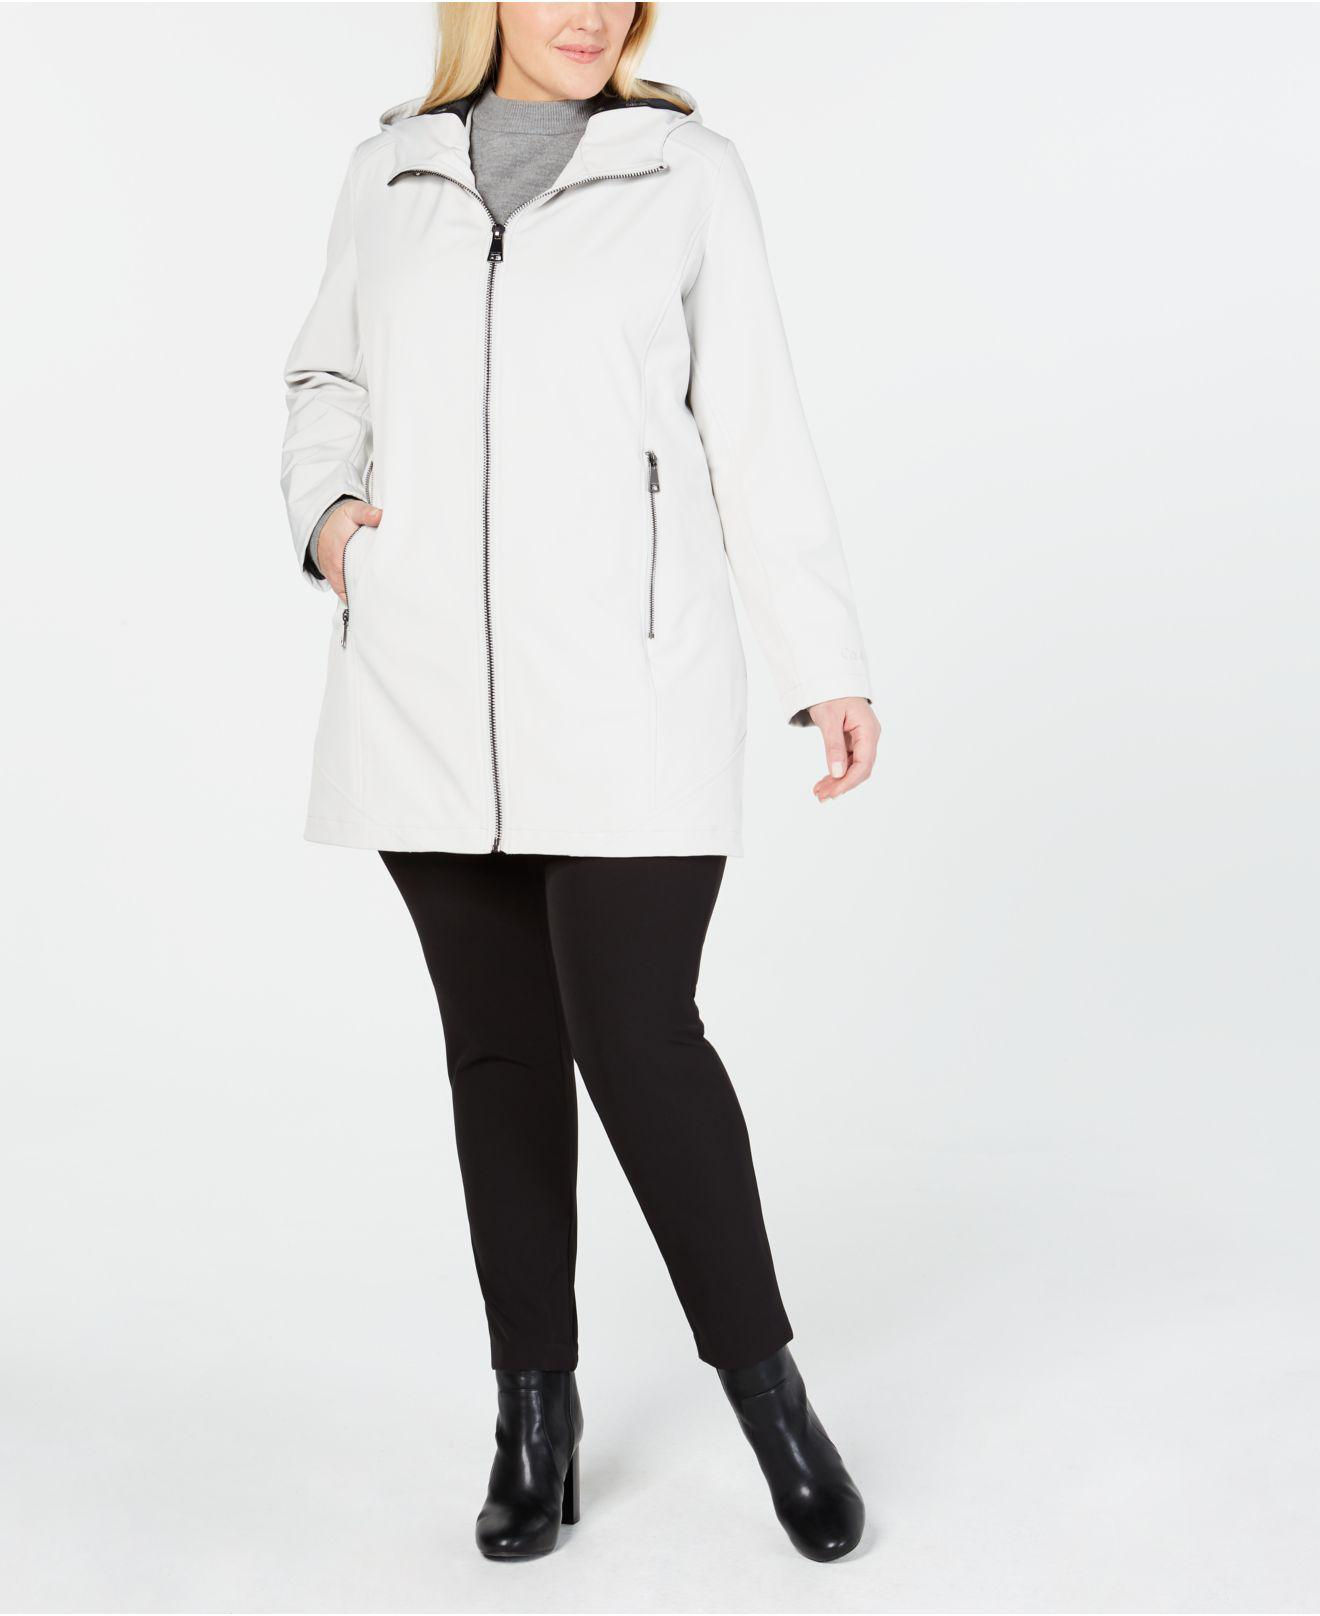 440a0e01806 Lyst - Calvin Klein Plus Size Hooded Raincoat in White